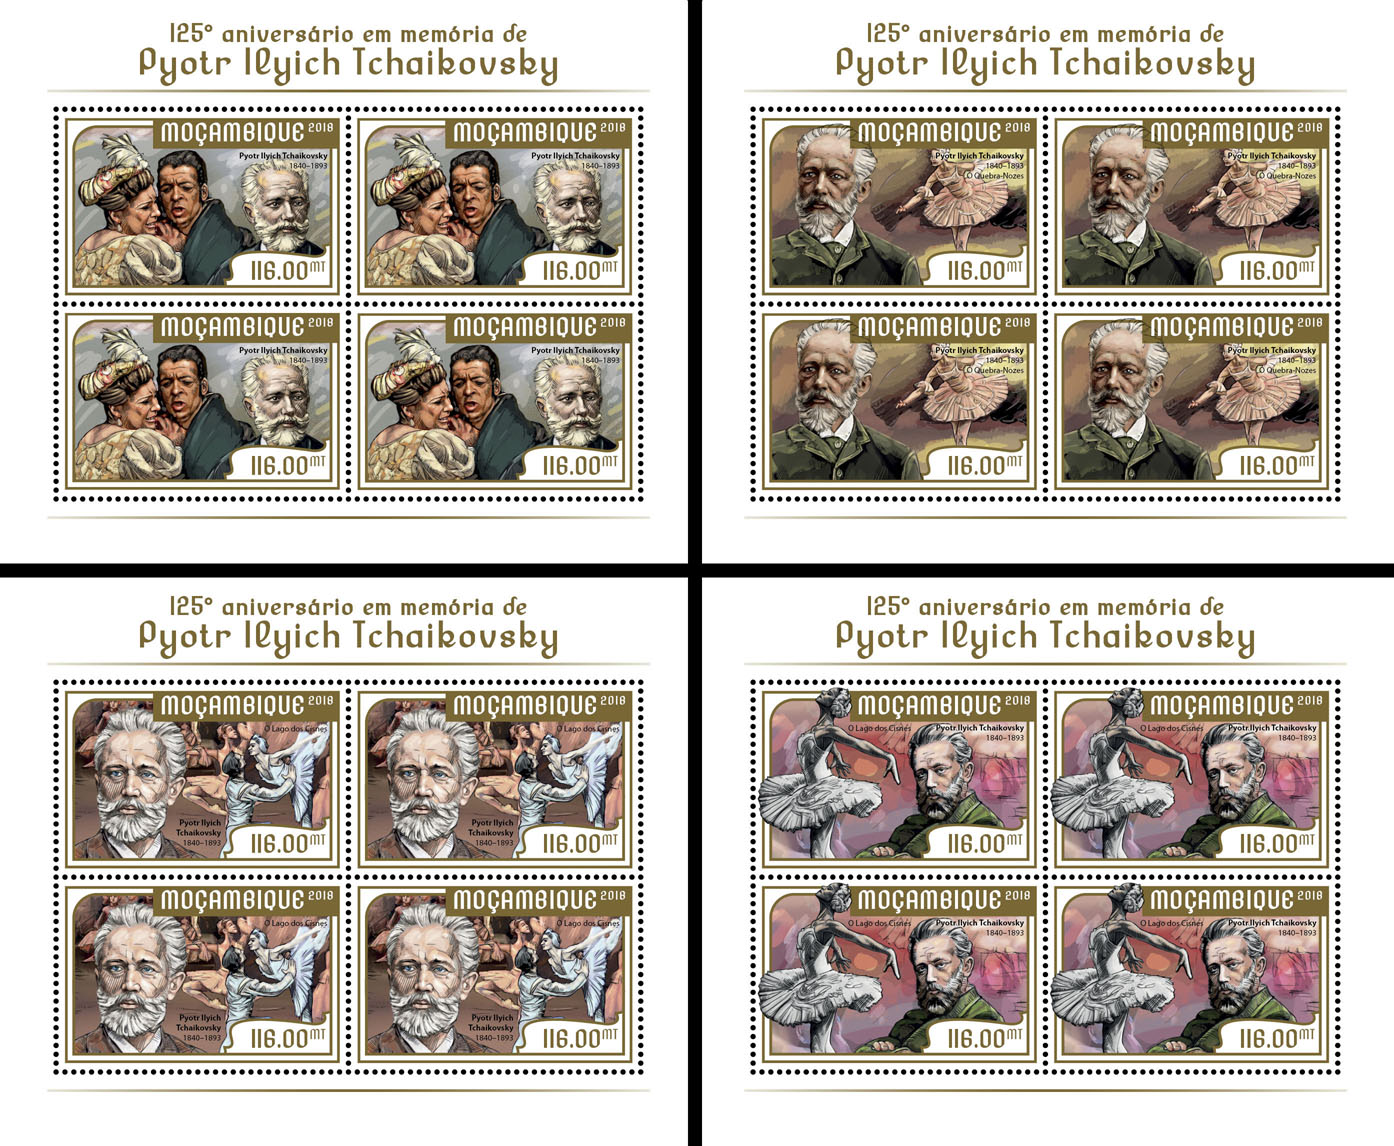 Pyotr Ilyich Tchaikovsky (4 sets of 4 stamps) - Issue of Mozambique postage Stamps